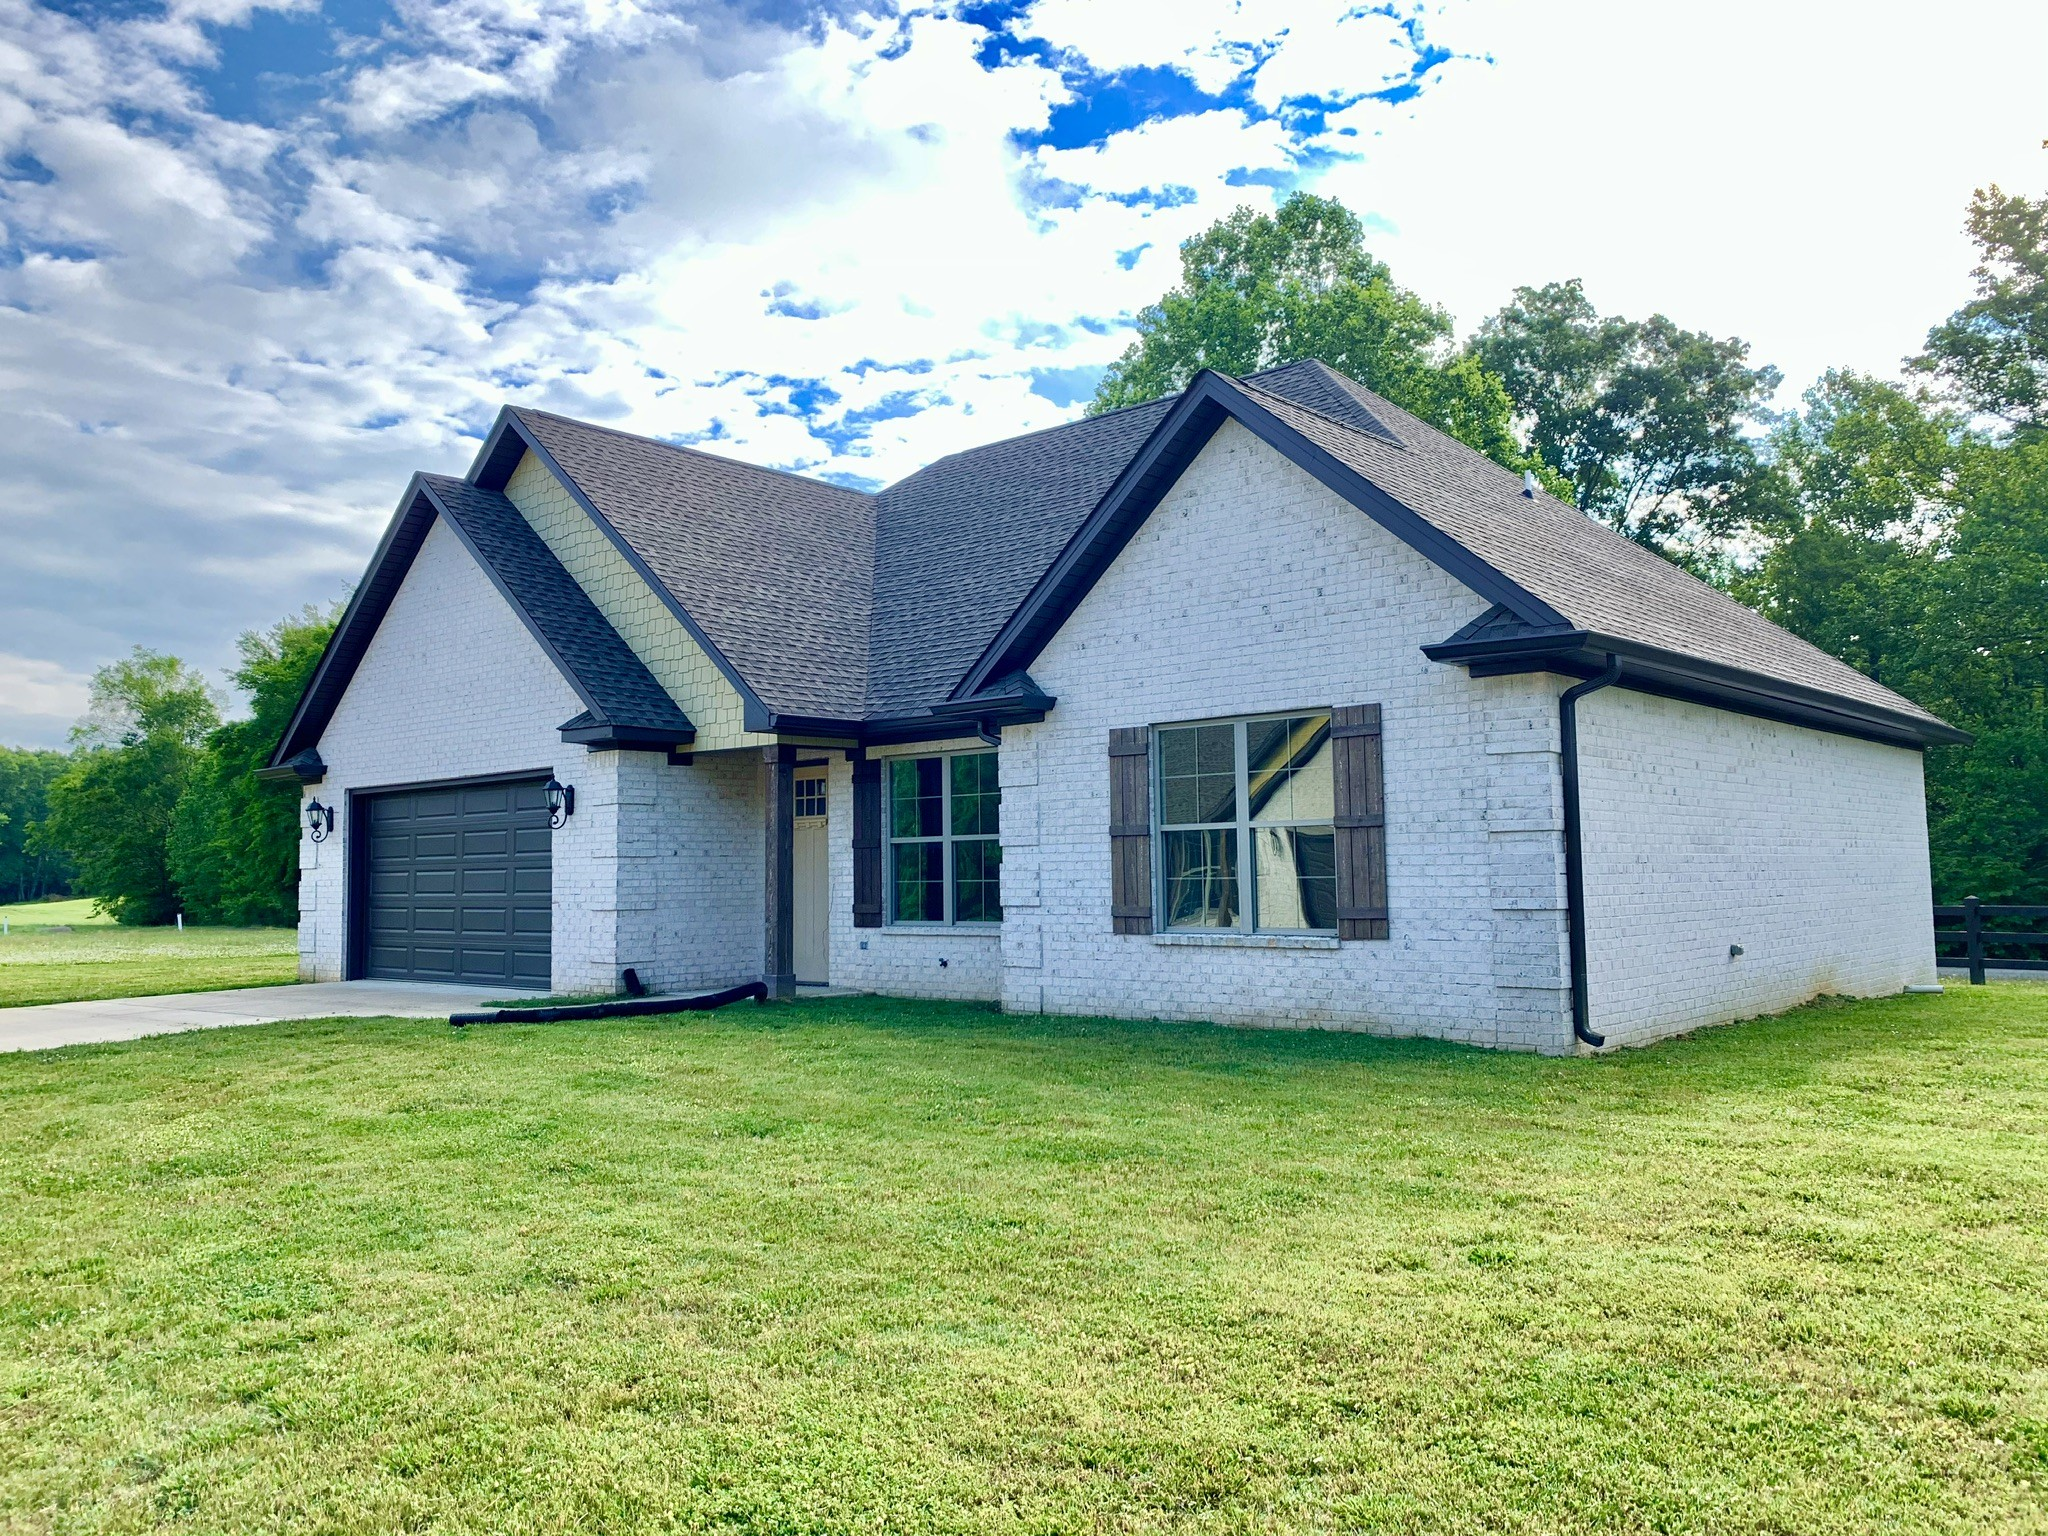 102 Andrews Dr., N Property Photo - Loretto, TN real estate listing